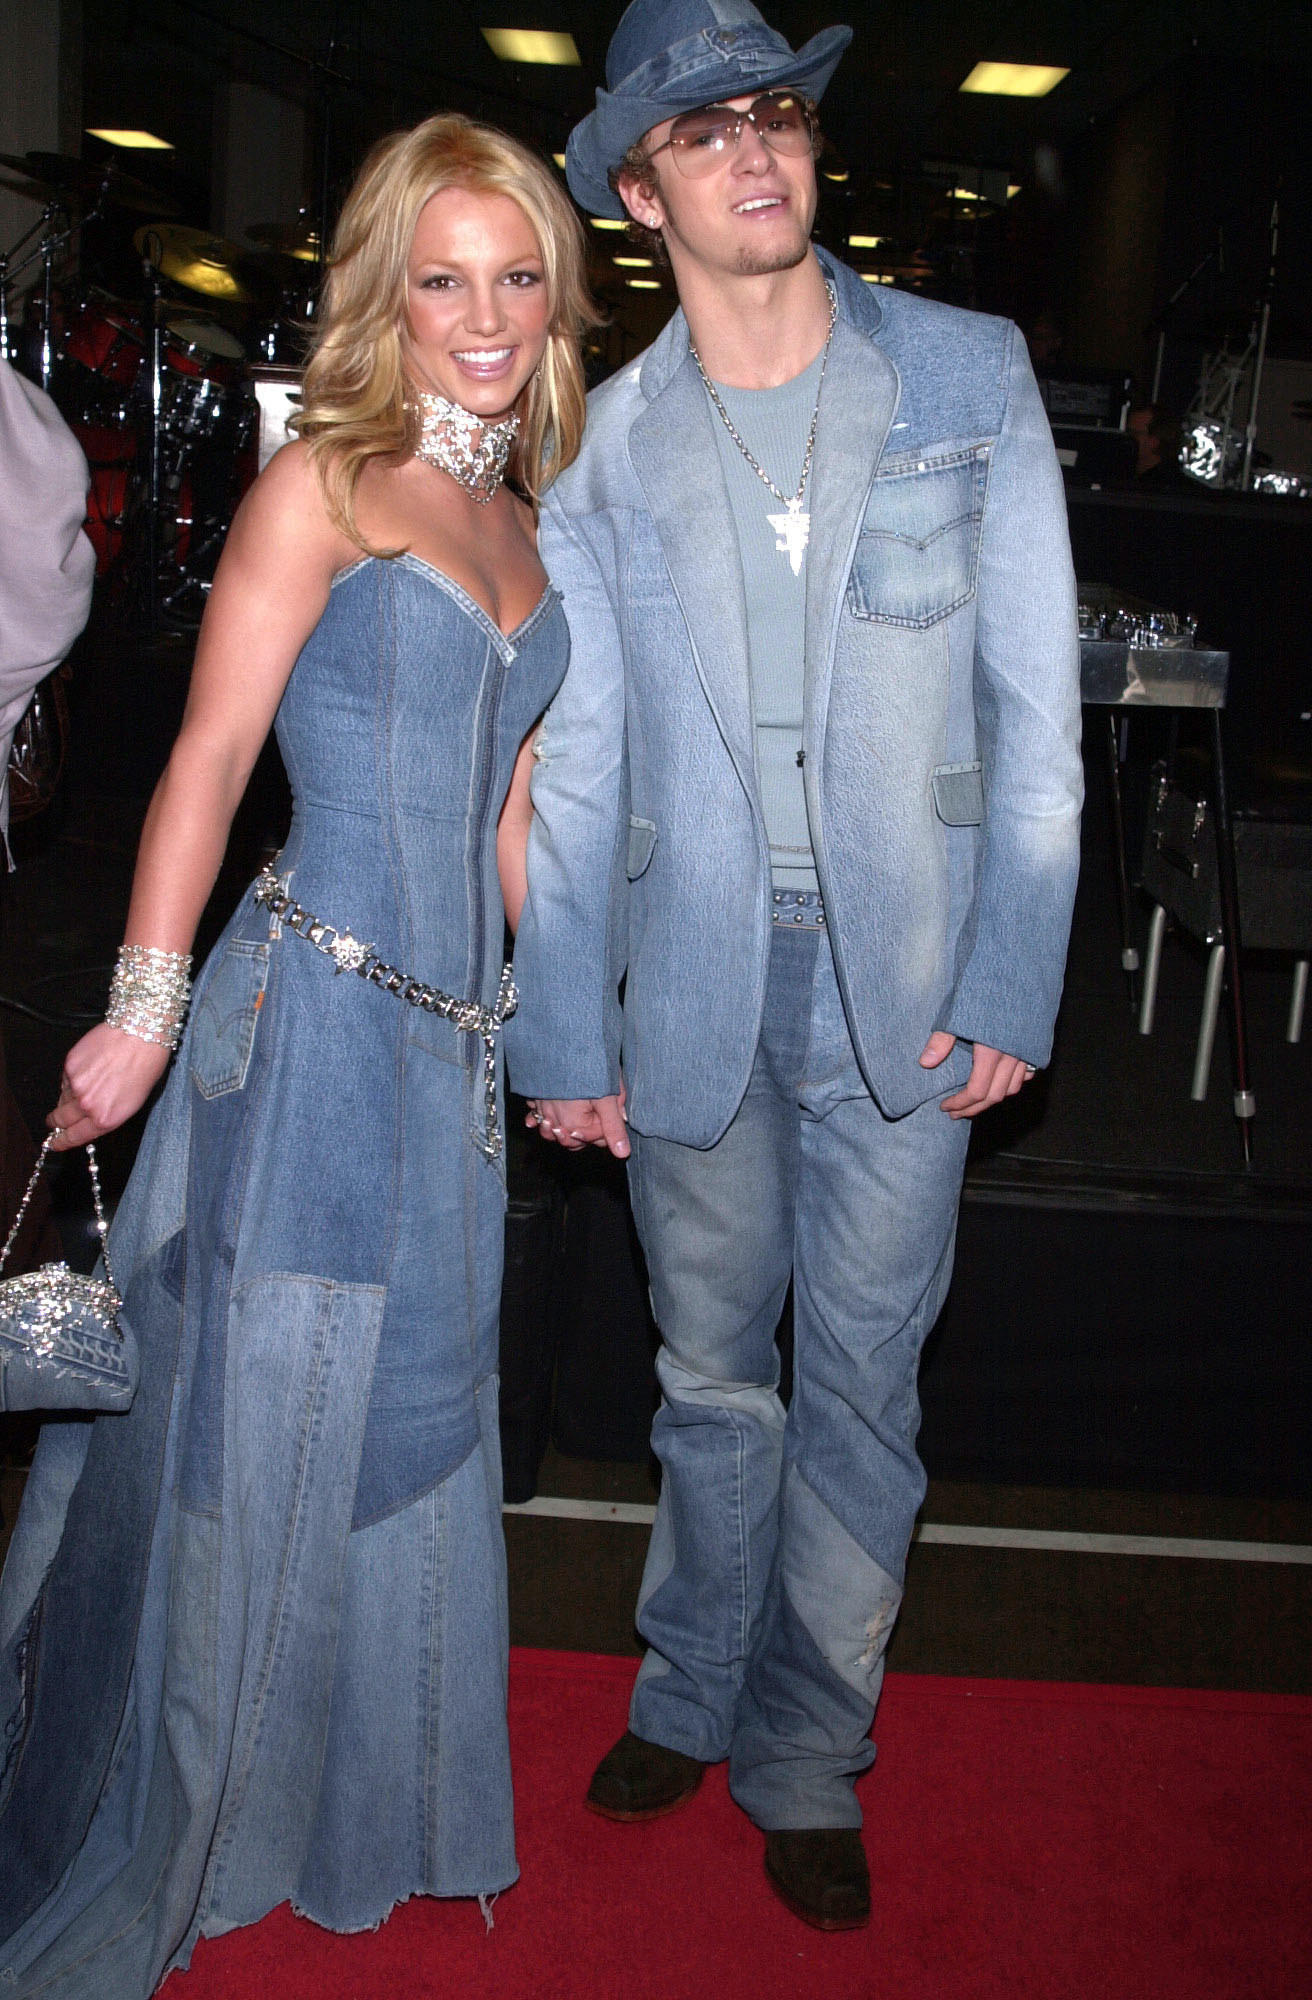 Britney and Justin in their infamous matching denim outfits